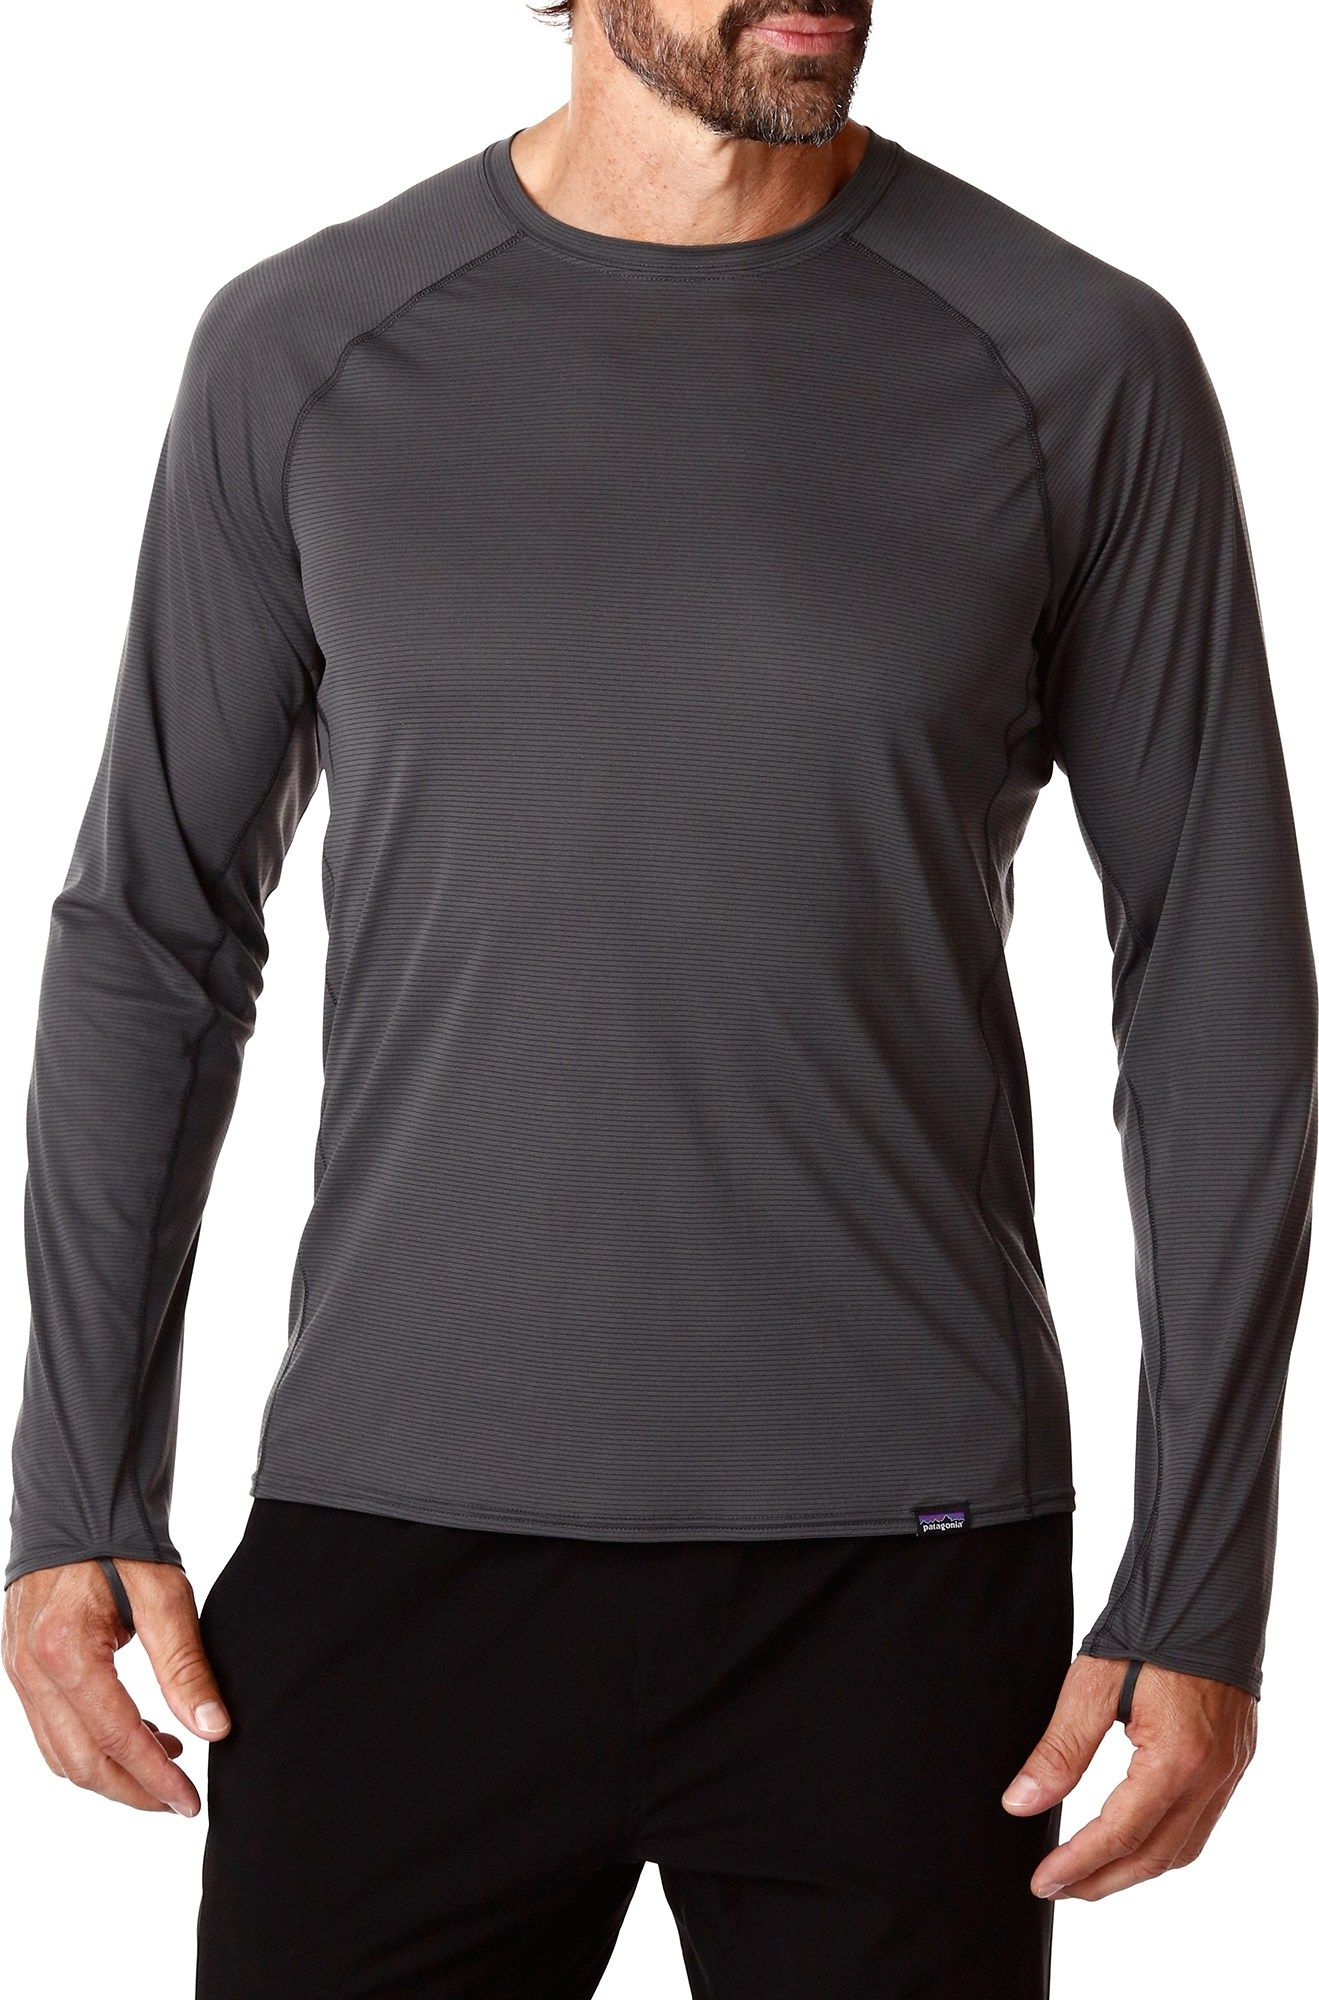 Capilene Lightweight Long Underwear Crew Top - Men's | Tops ...